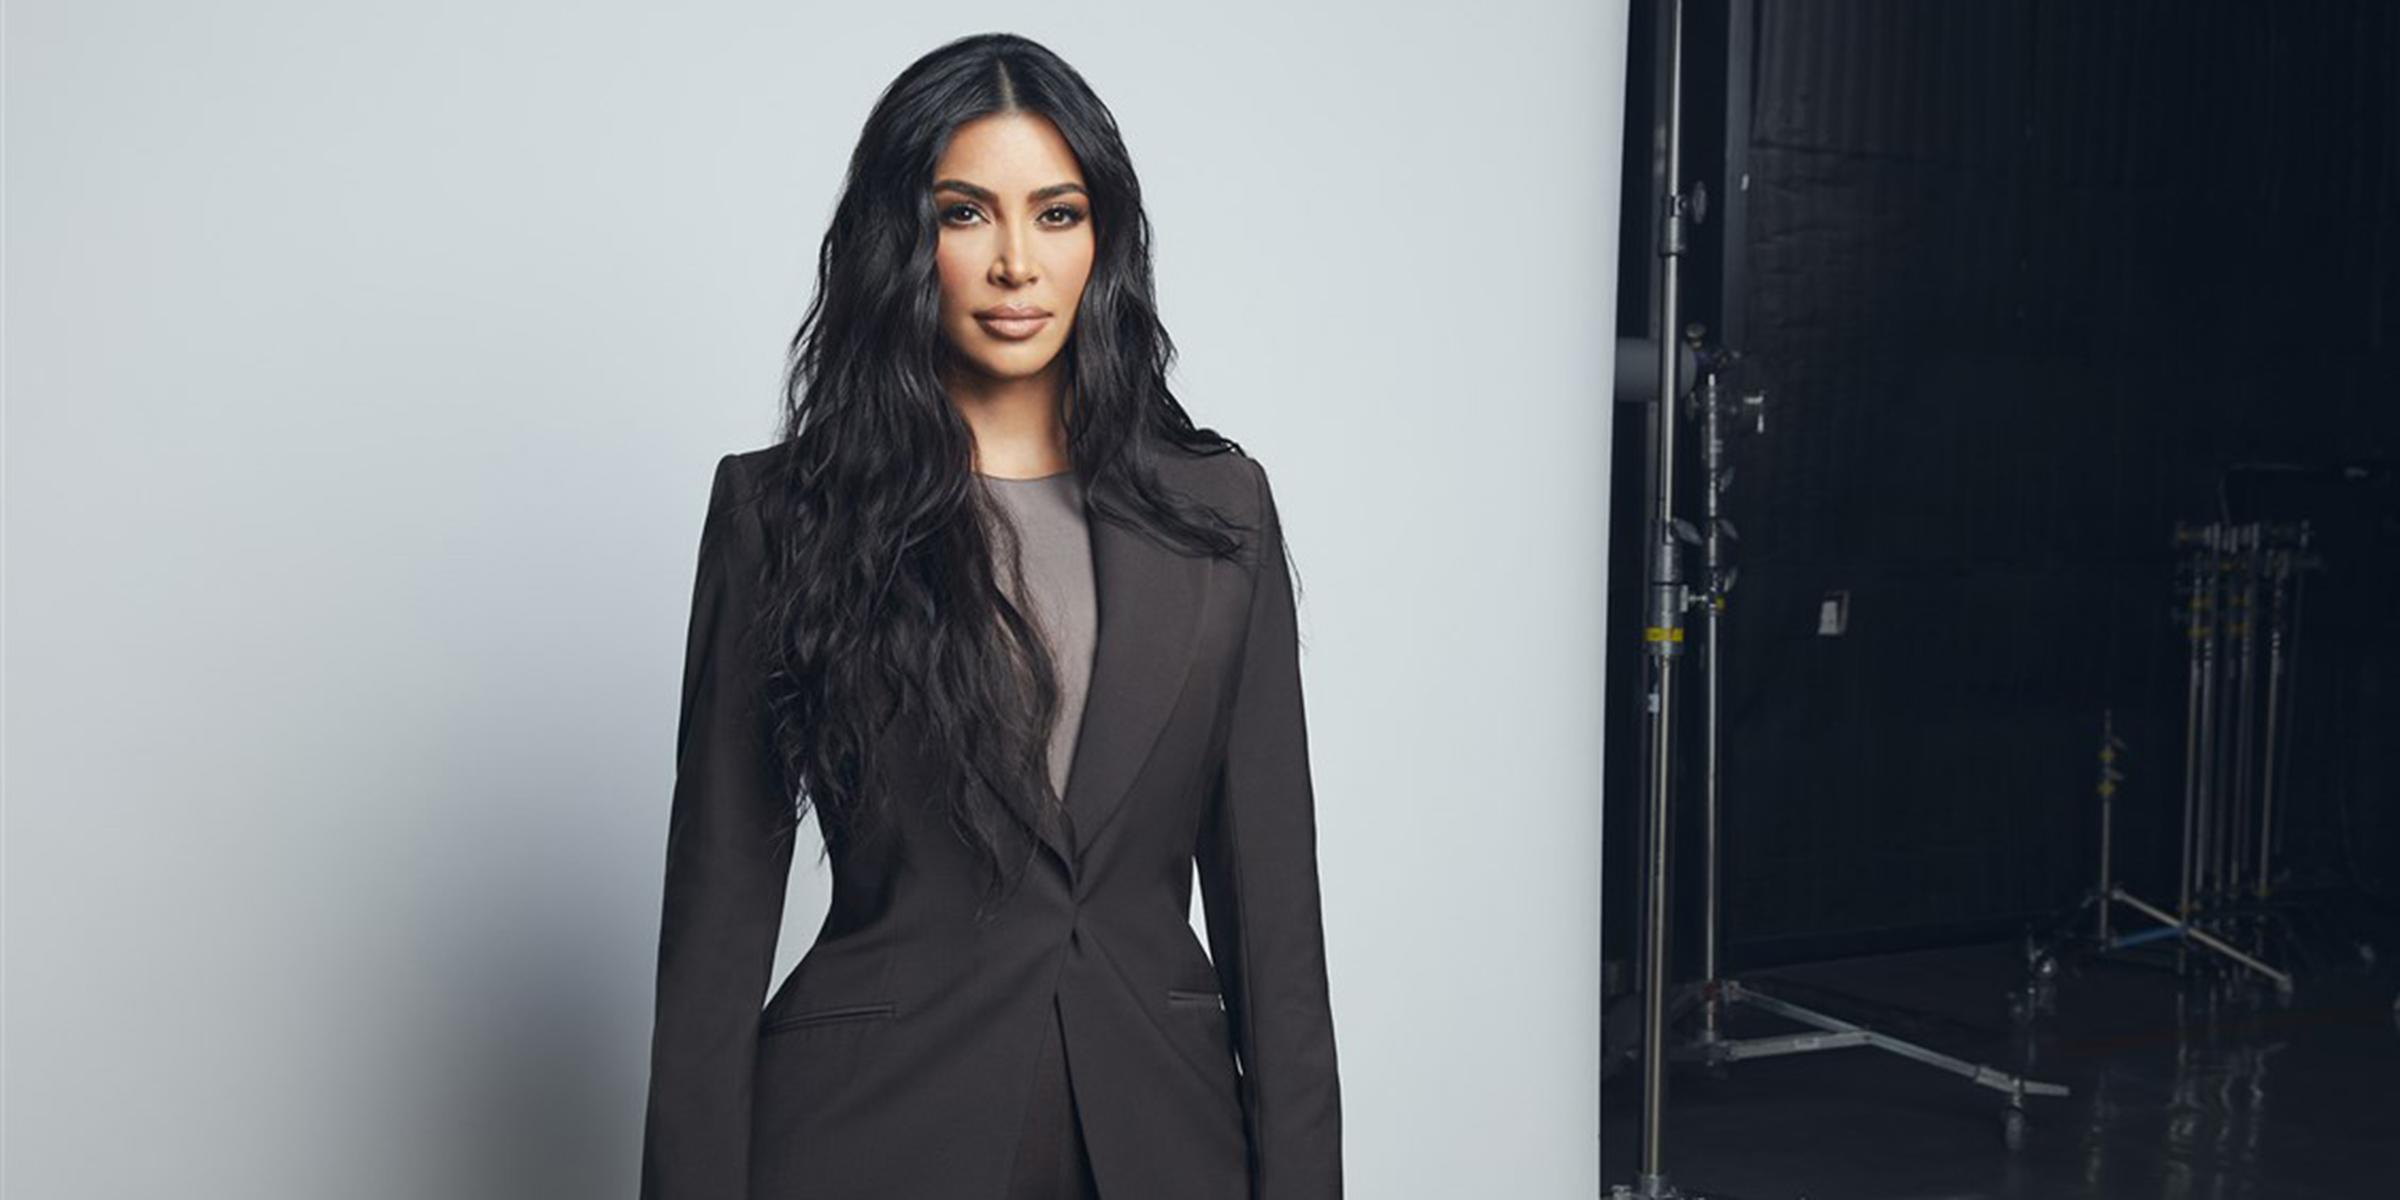 Kim Kardashian West to freeze Facebook, Instagram accounts